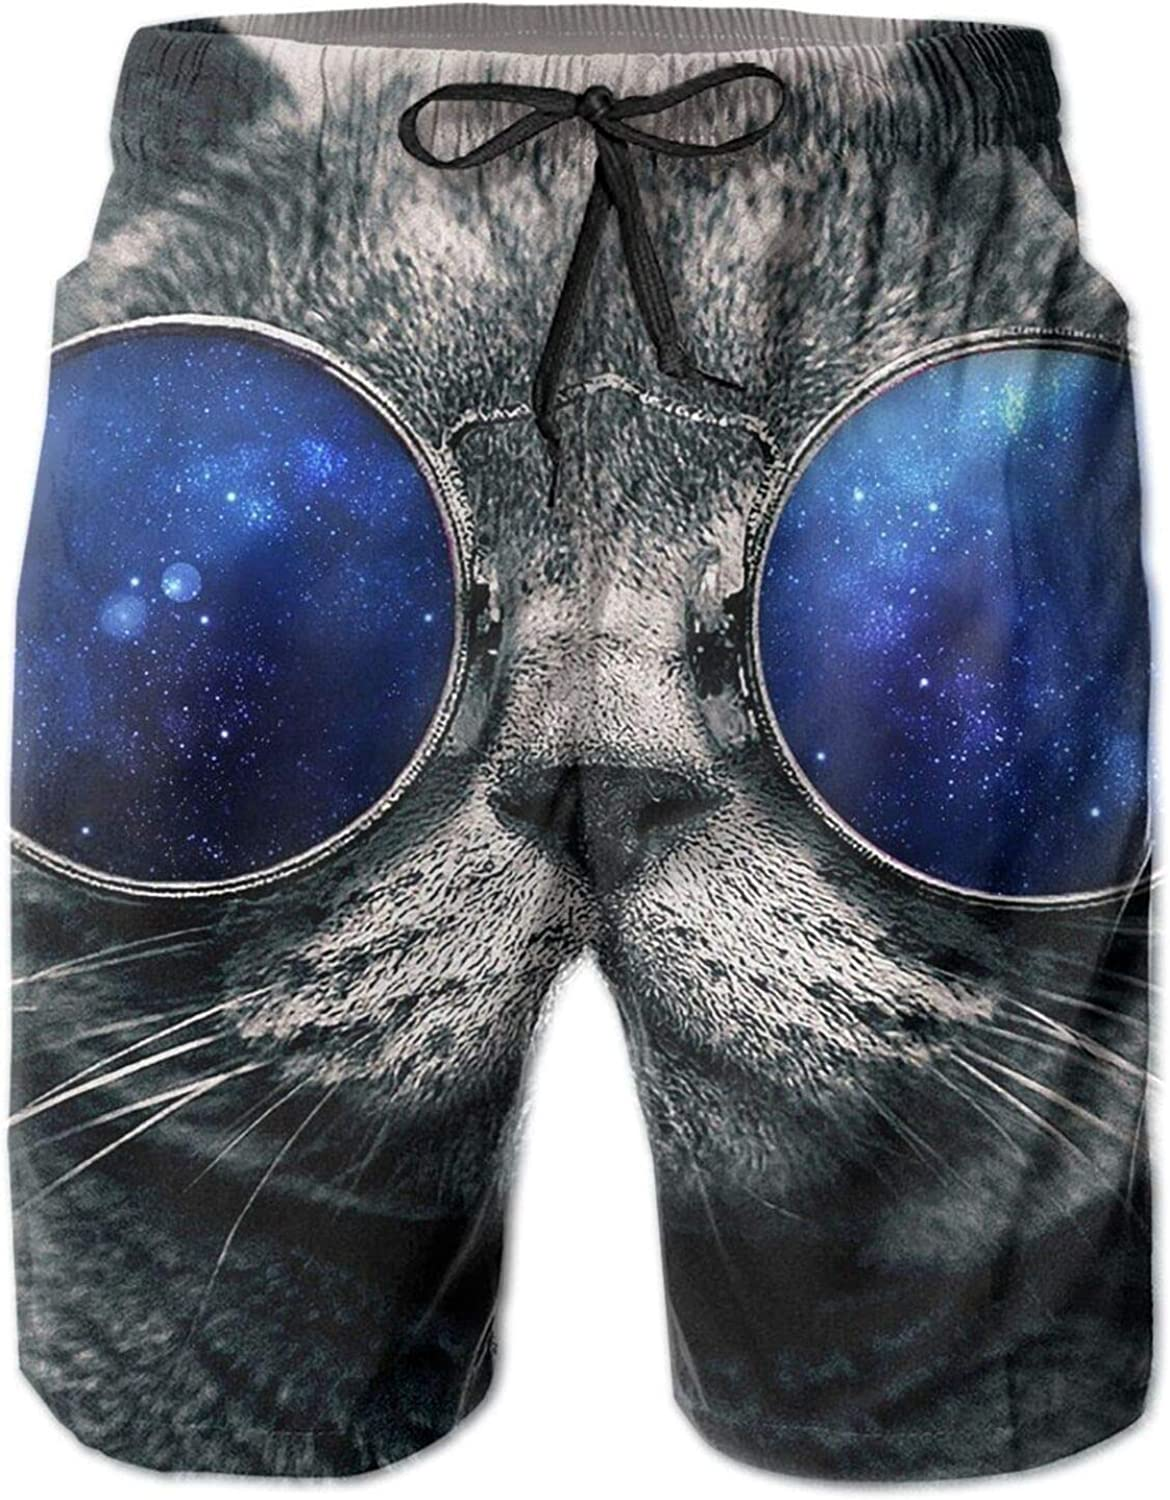 LINEFLYWI Space Cat Board Shorts, 3D Swim Trunks Quick Dry Summer Underwear, Beach Shorts with Pockets, for Mens